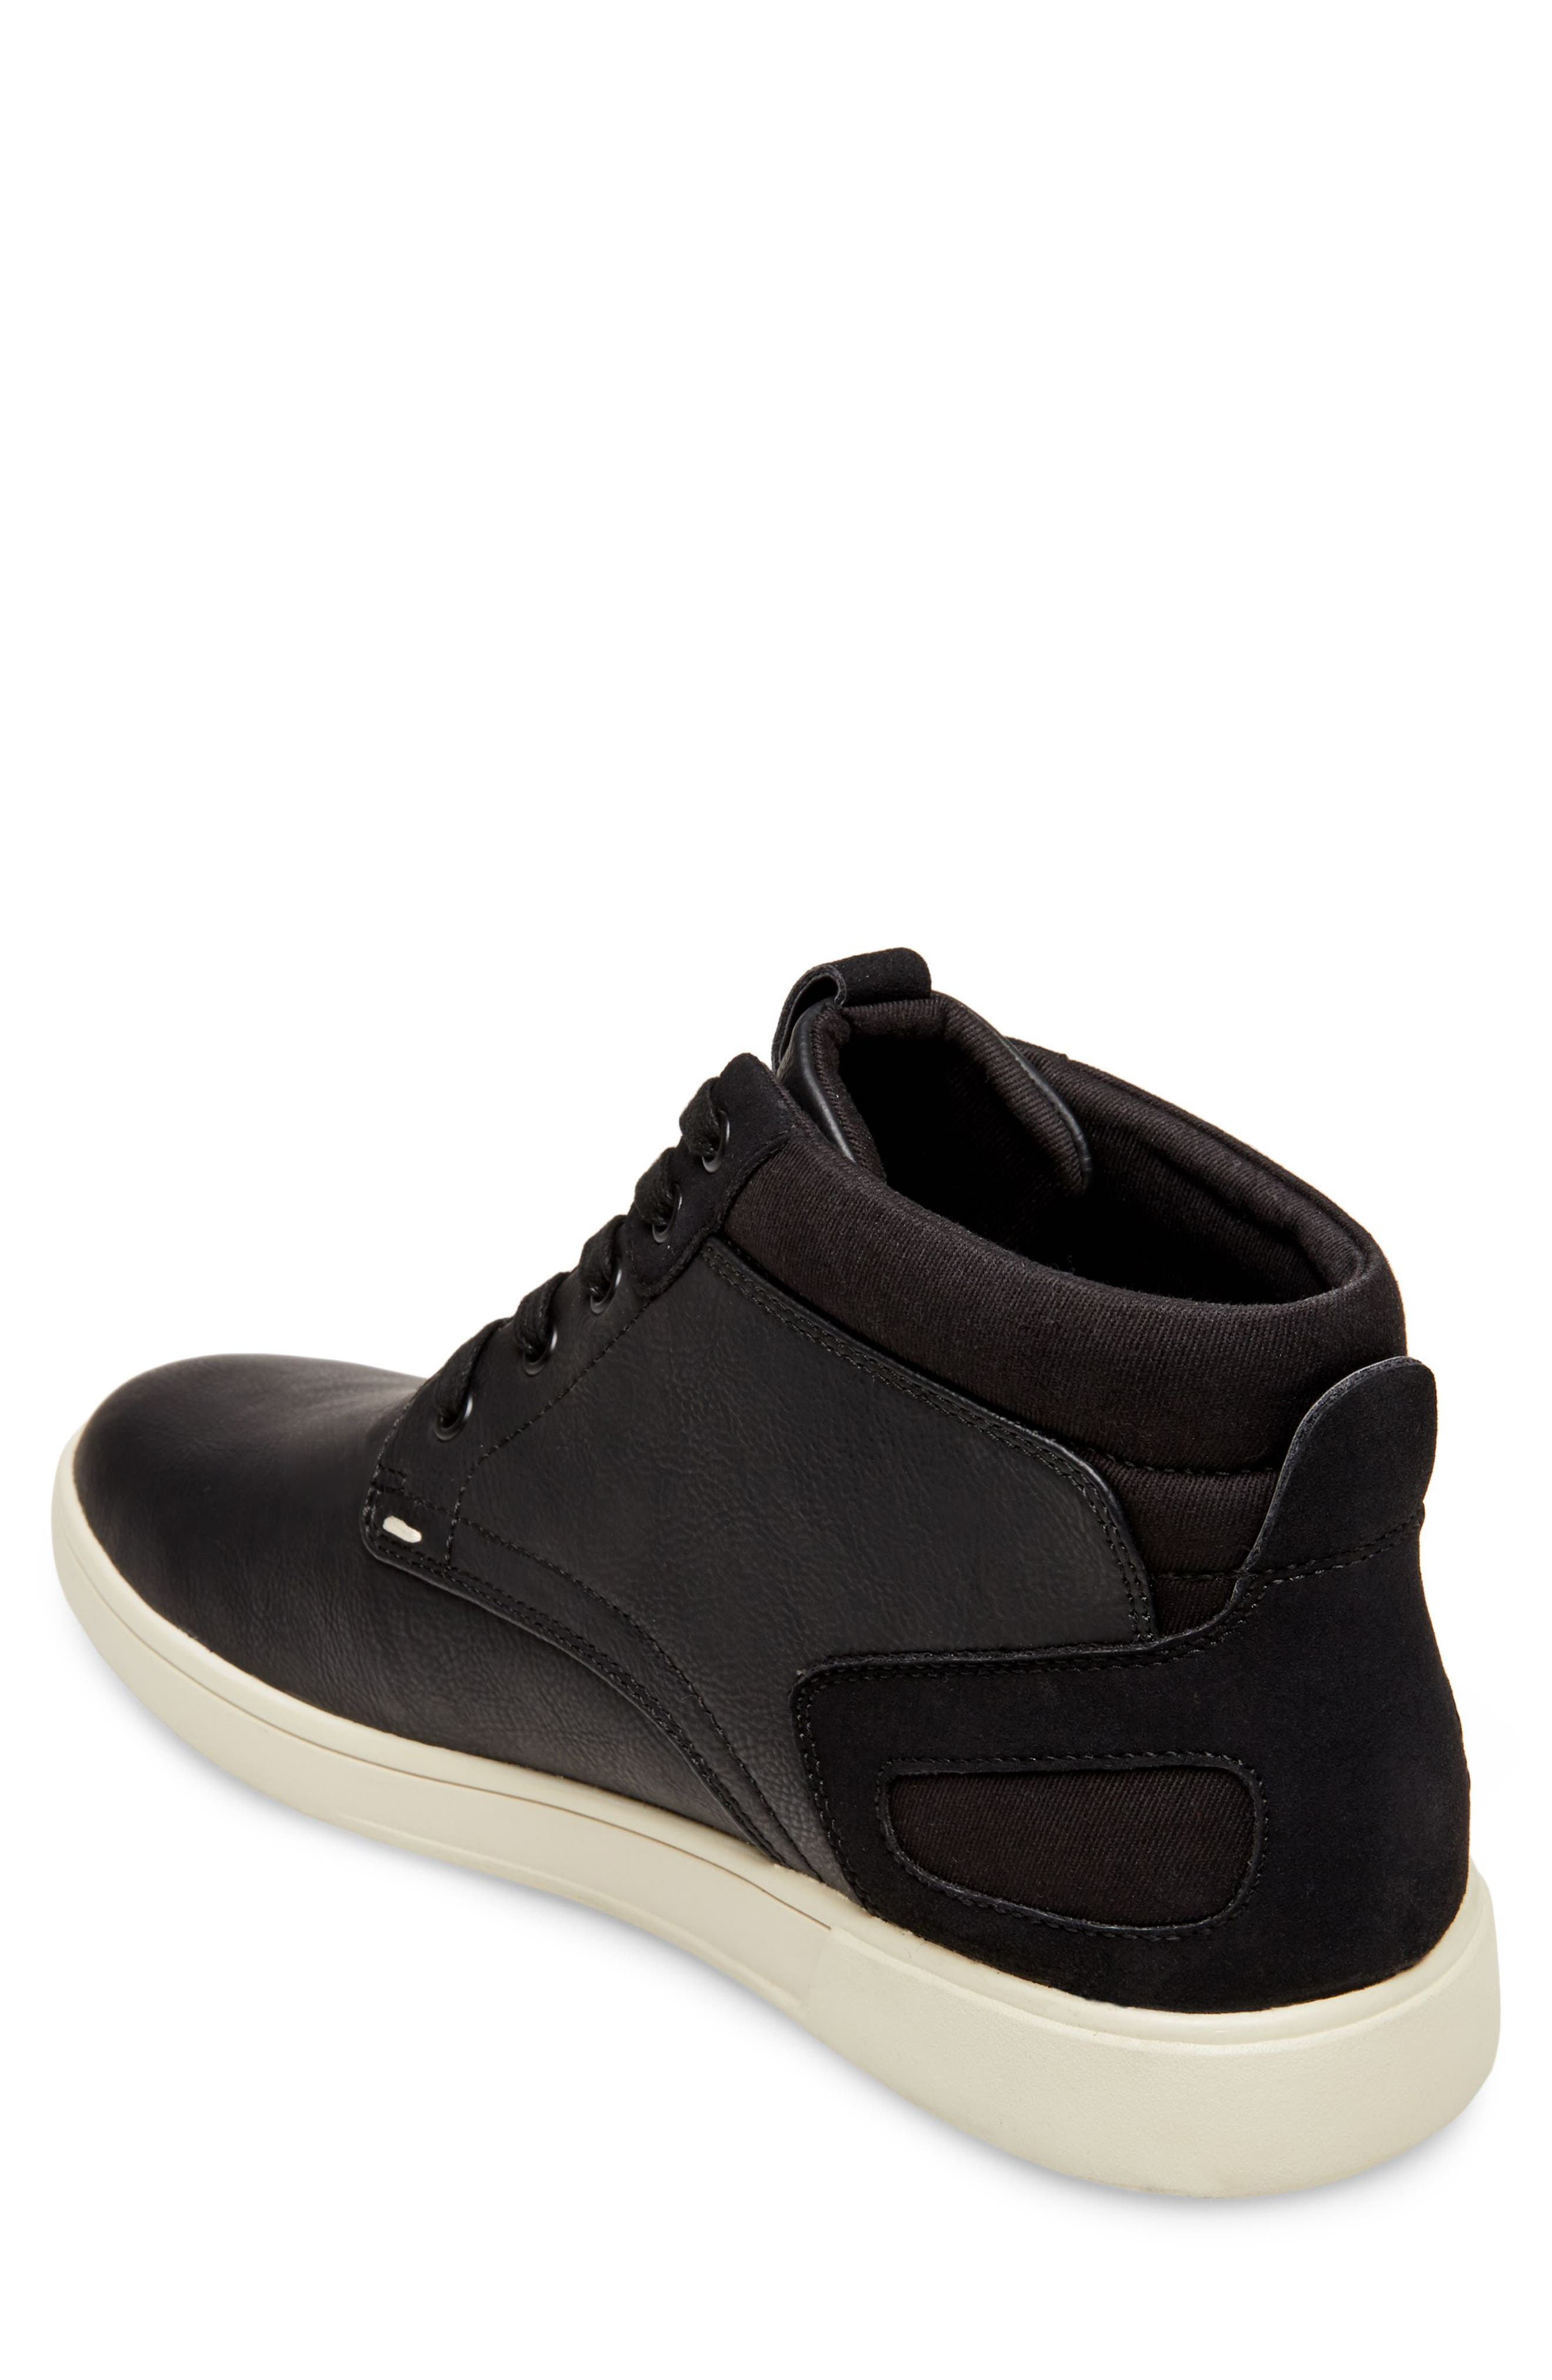 Forsyth High Top Sneaker,                             Alternate thumbnail 2, color,                             BLACK LEATHER